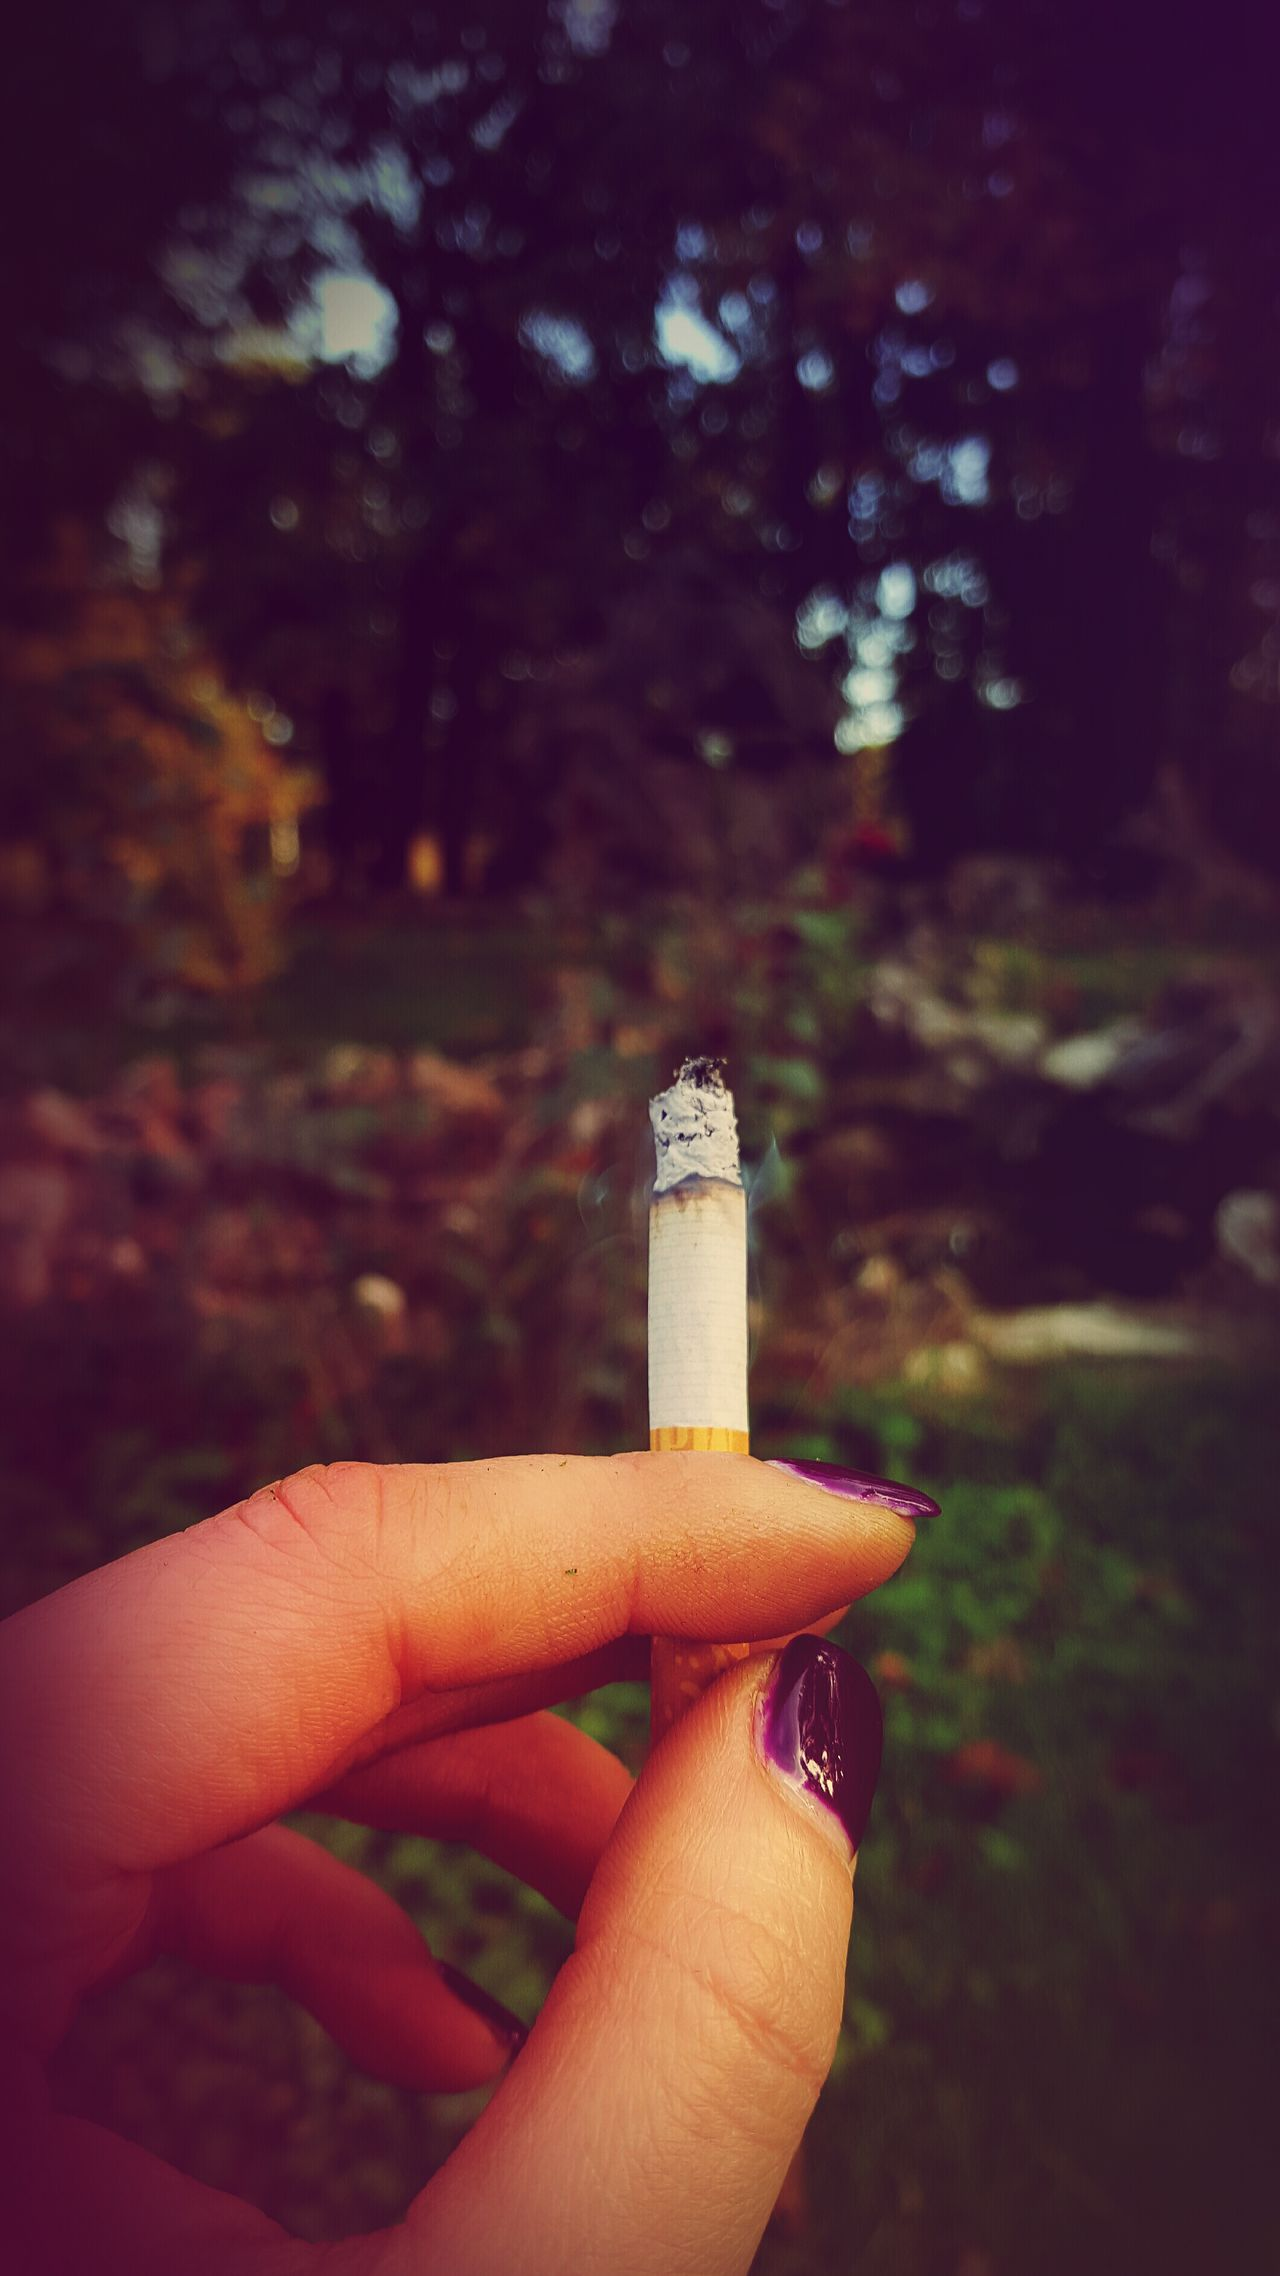 Smoking Issues Real People Adults Only Outdoors Cigarette Time Cigarretes EyeEmNewHere